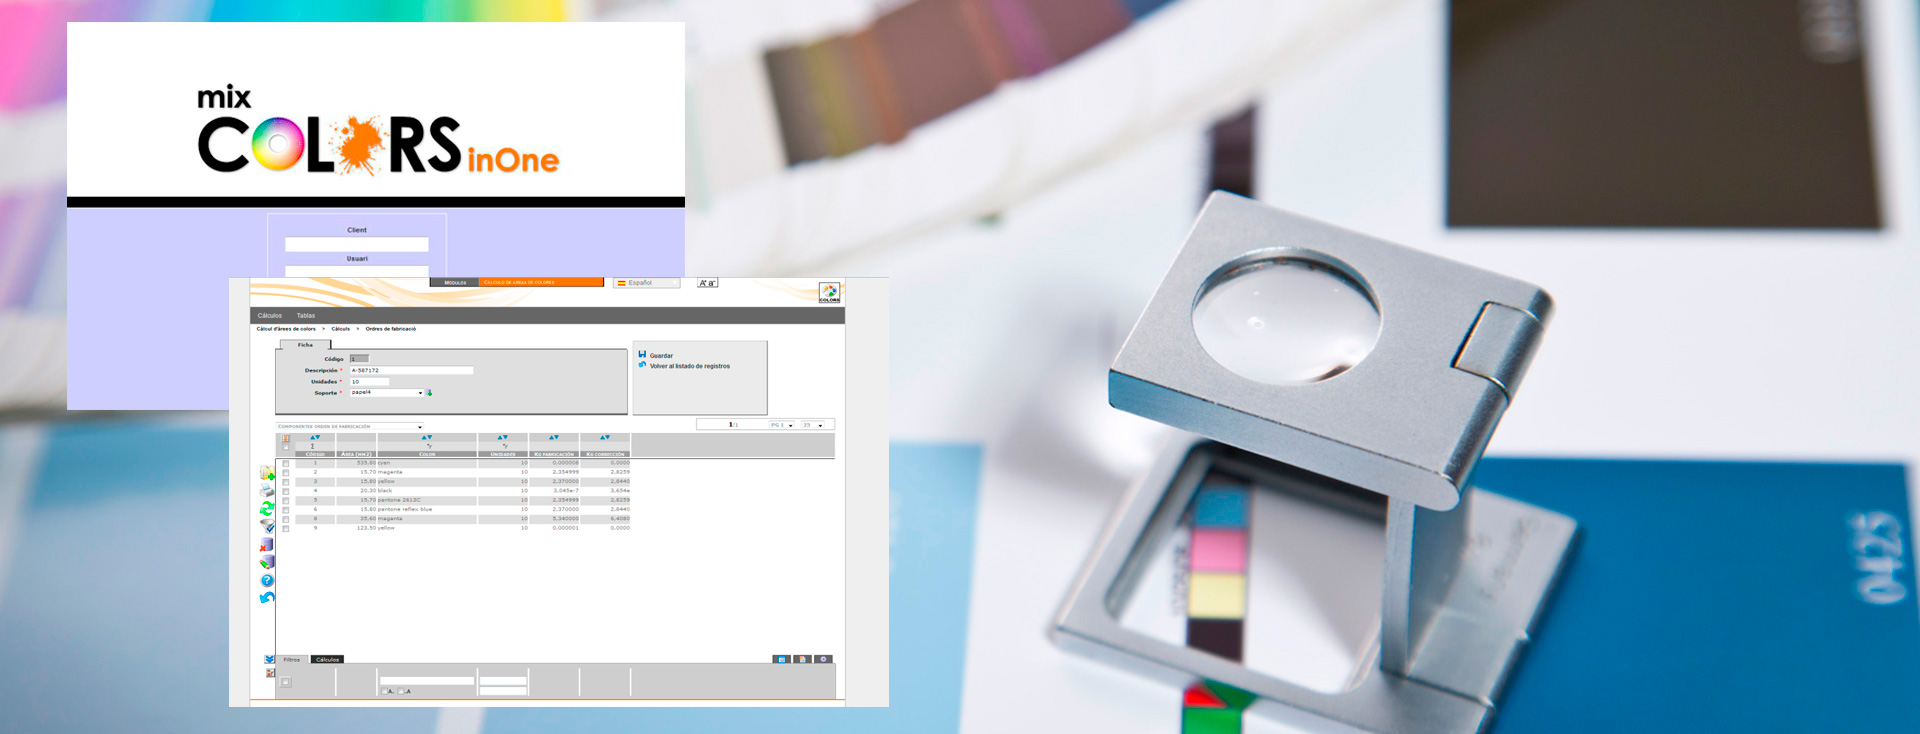 Paint Dosing systems Mix Colors in One